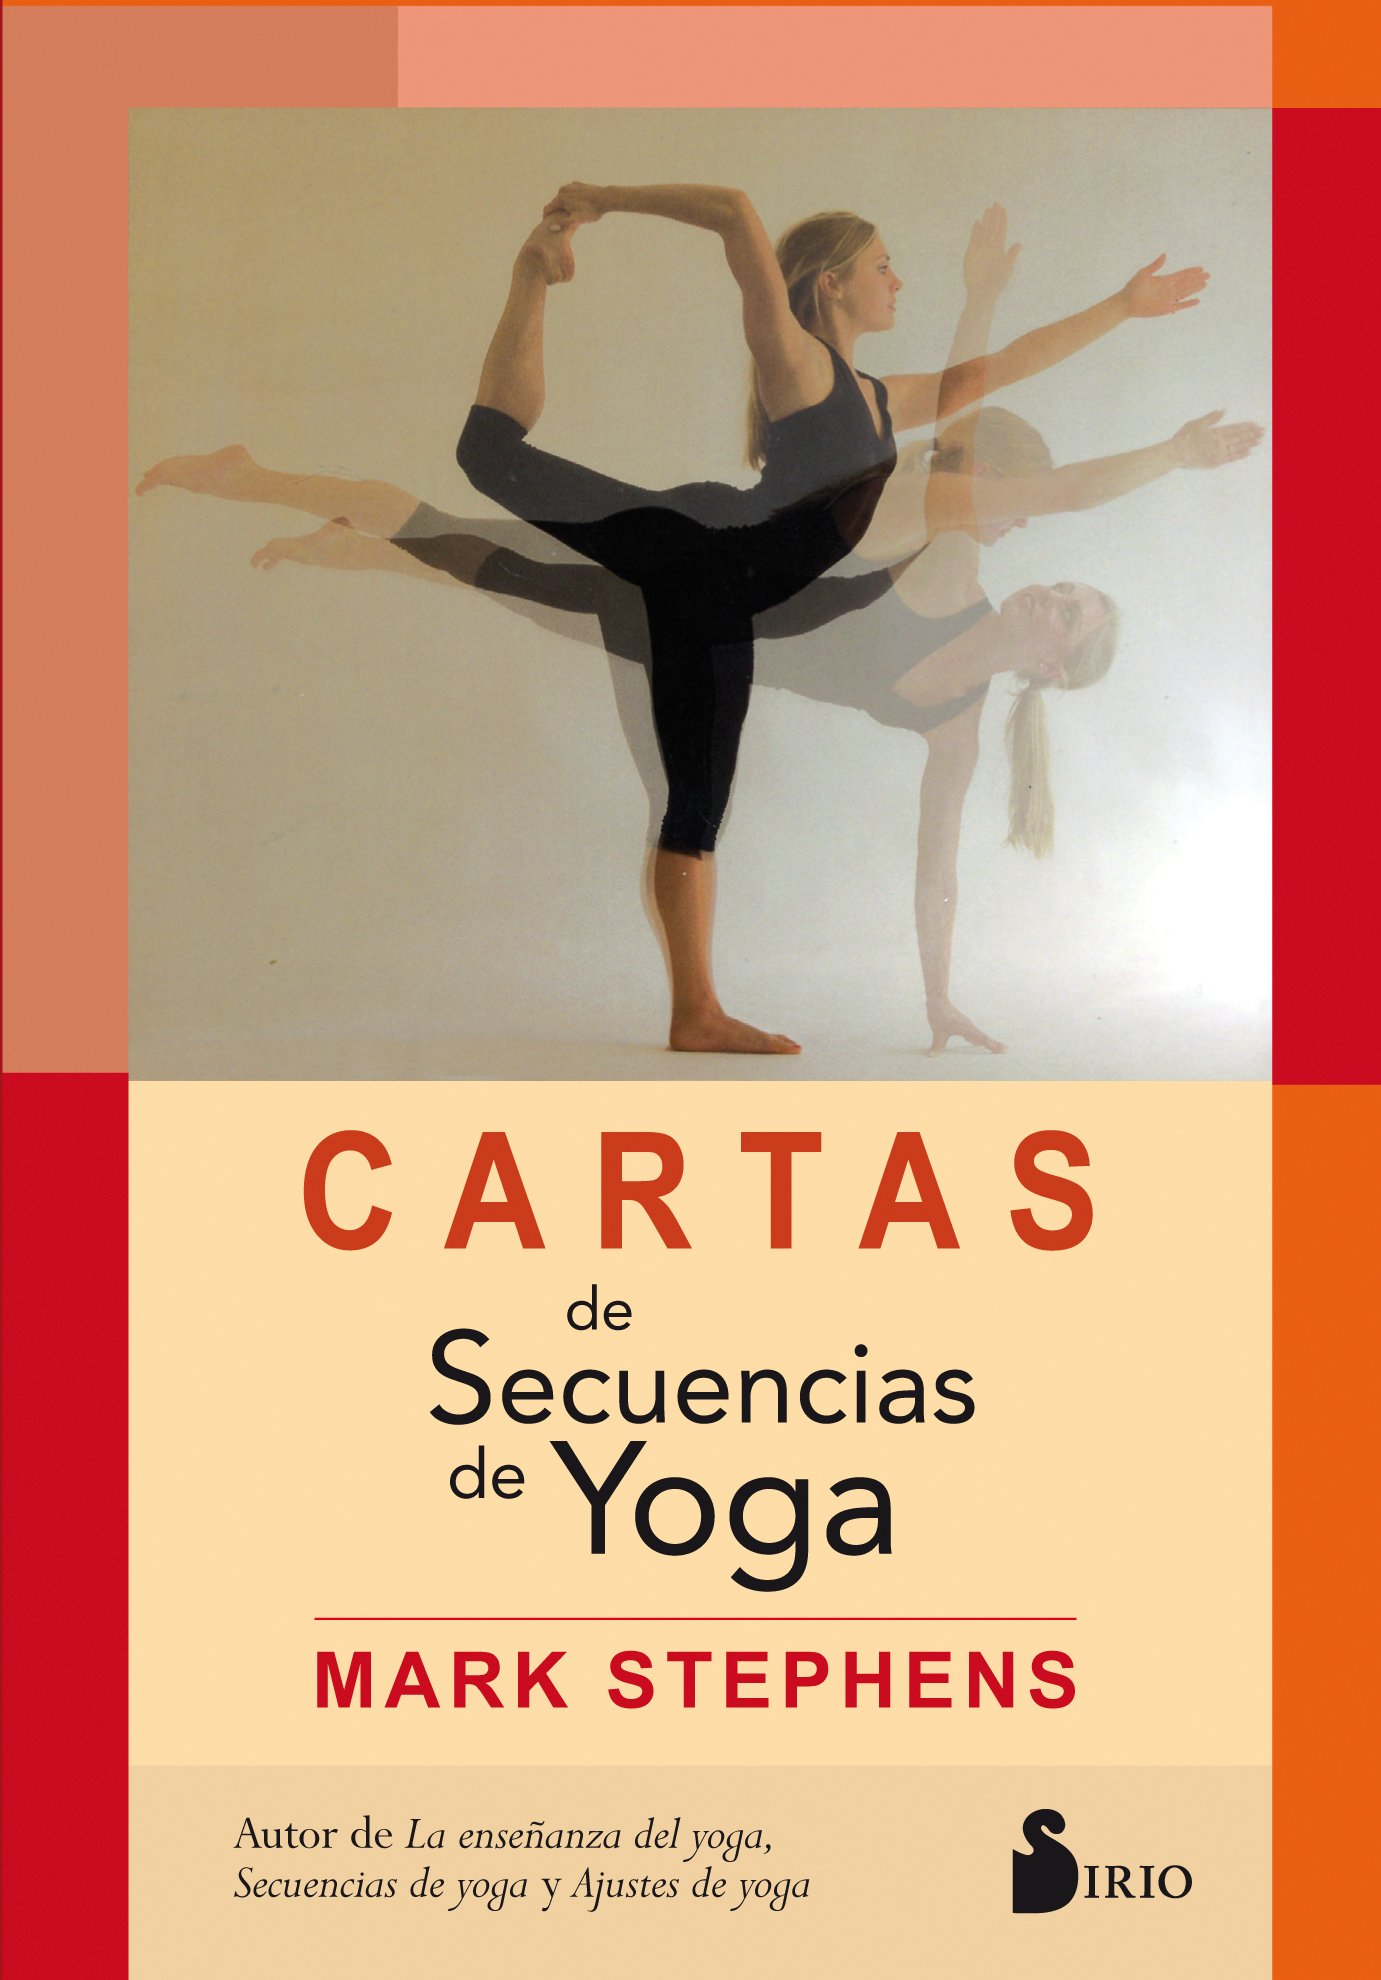 Cartas de sencuencias de yoga (Spanish Edition): Mark ...